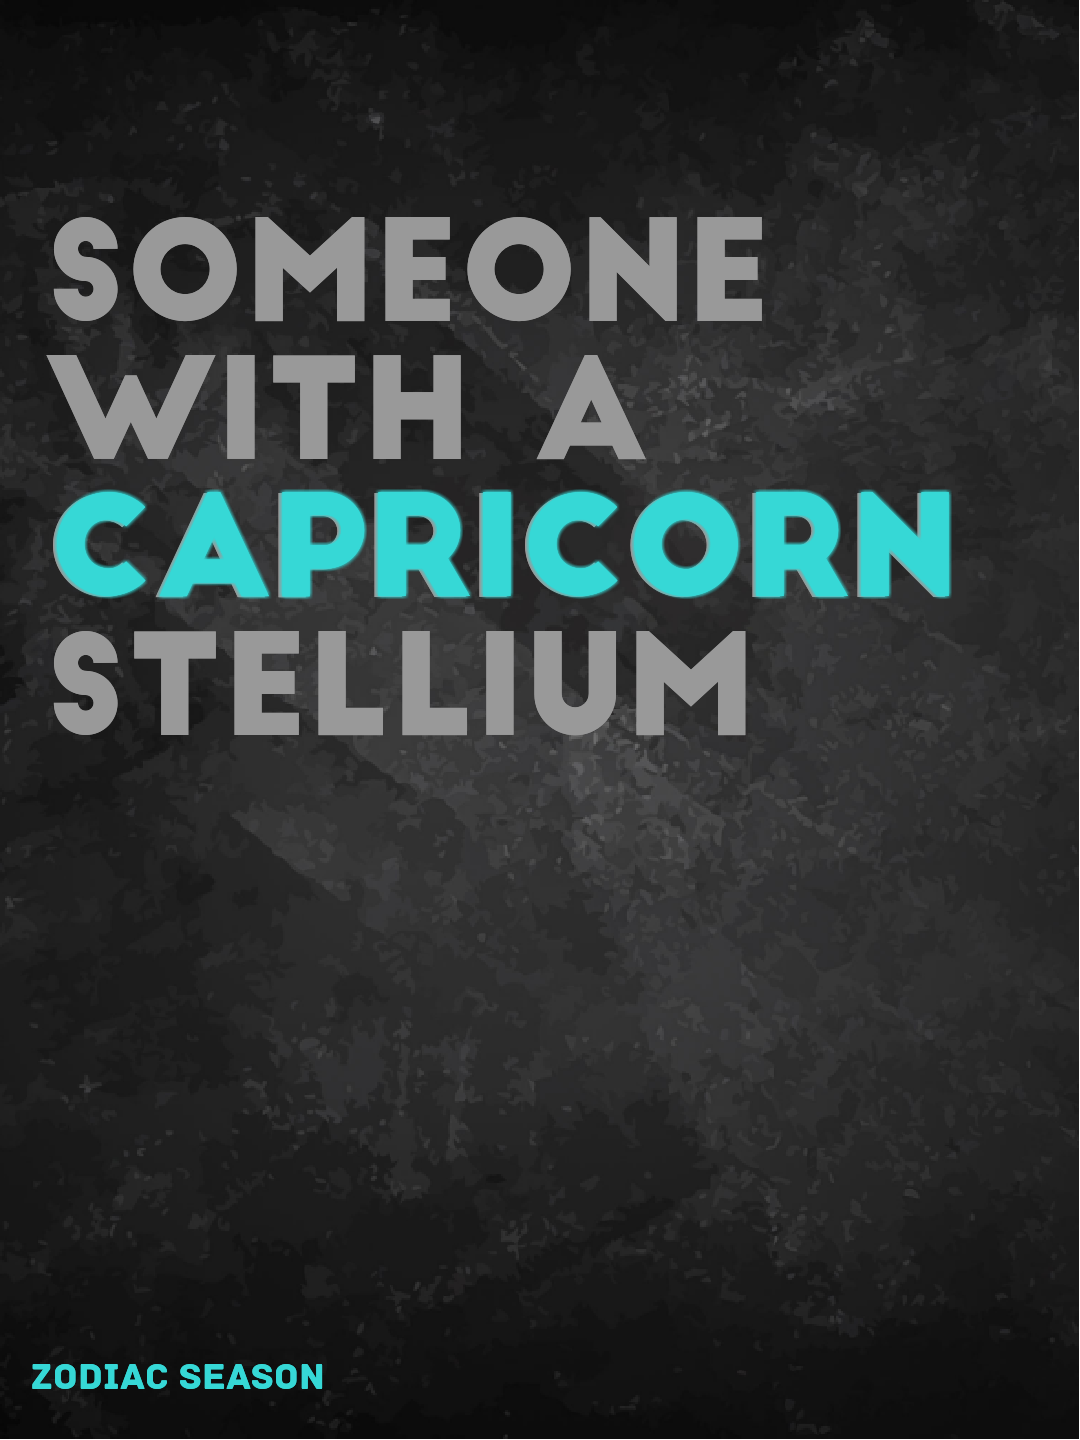 someone with a Capricorn stellium | The Zodiac | Capricorn, Zodiac